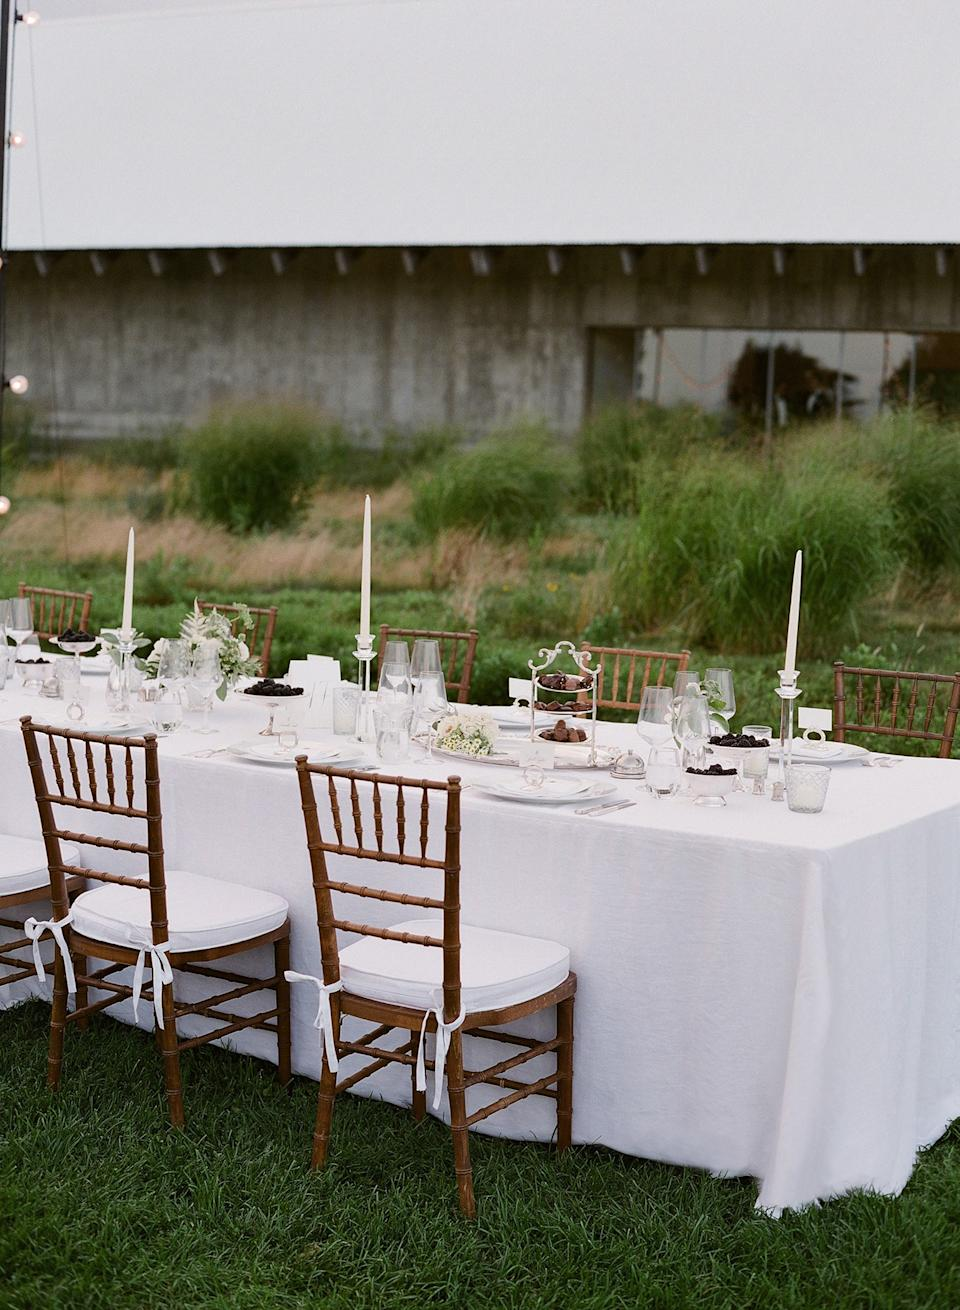 Our rehearsal dinner took place in an open field at the Parrish Art Museum.